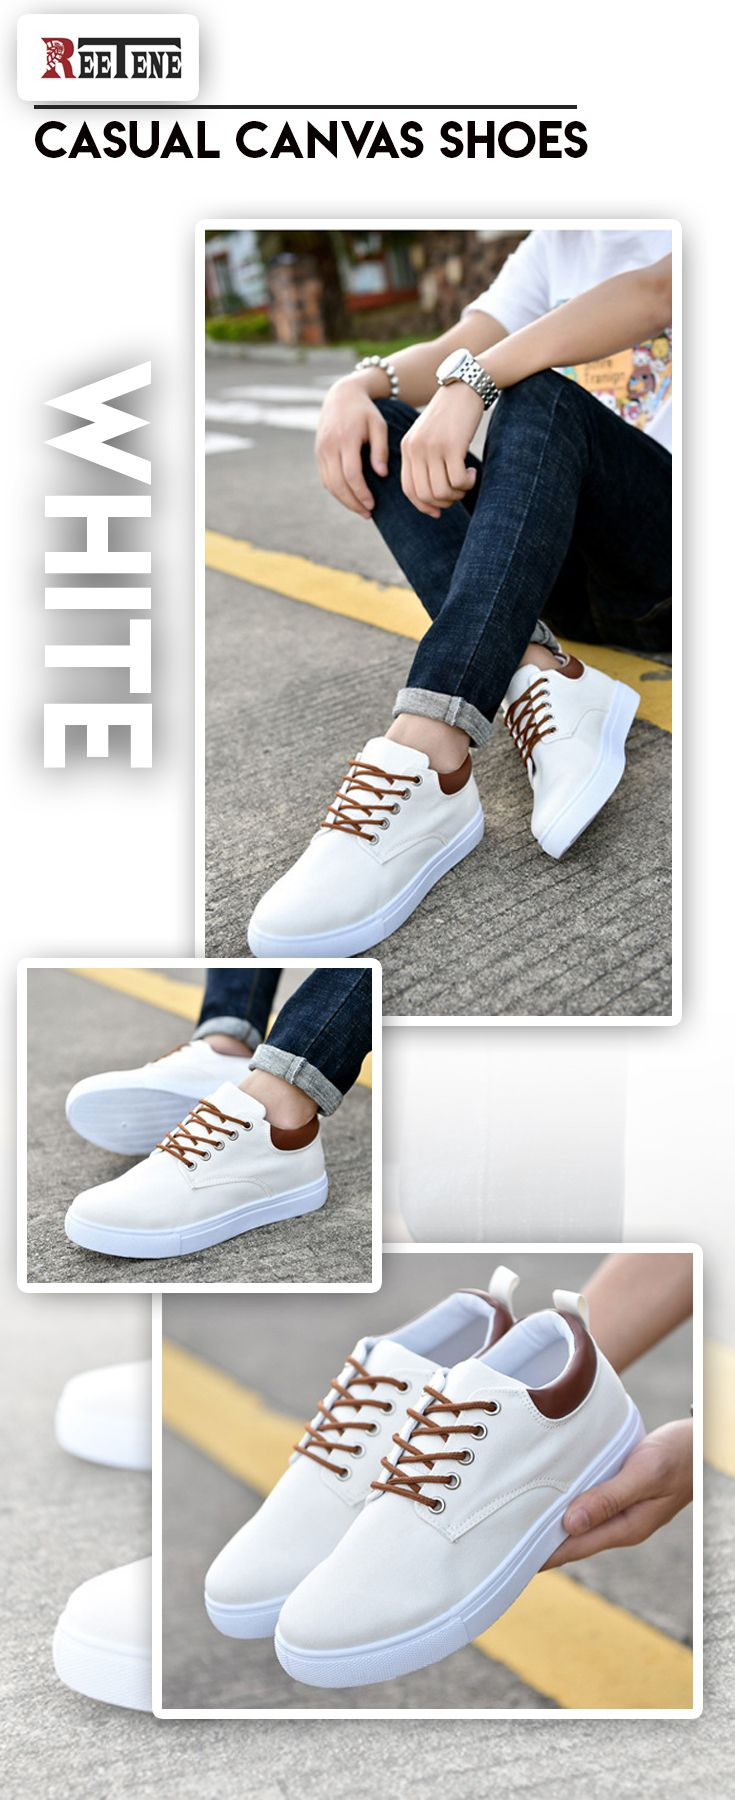 102d4052e0 Men s comfortable white clean canvas shoes - Men s fashion style brand  attire casual affordable accessories street